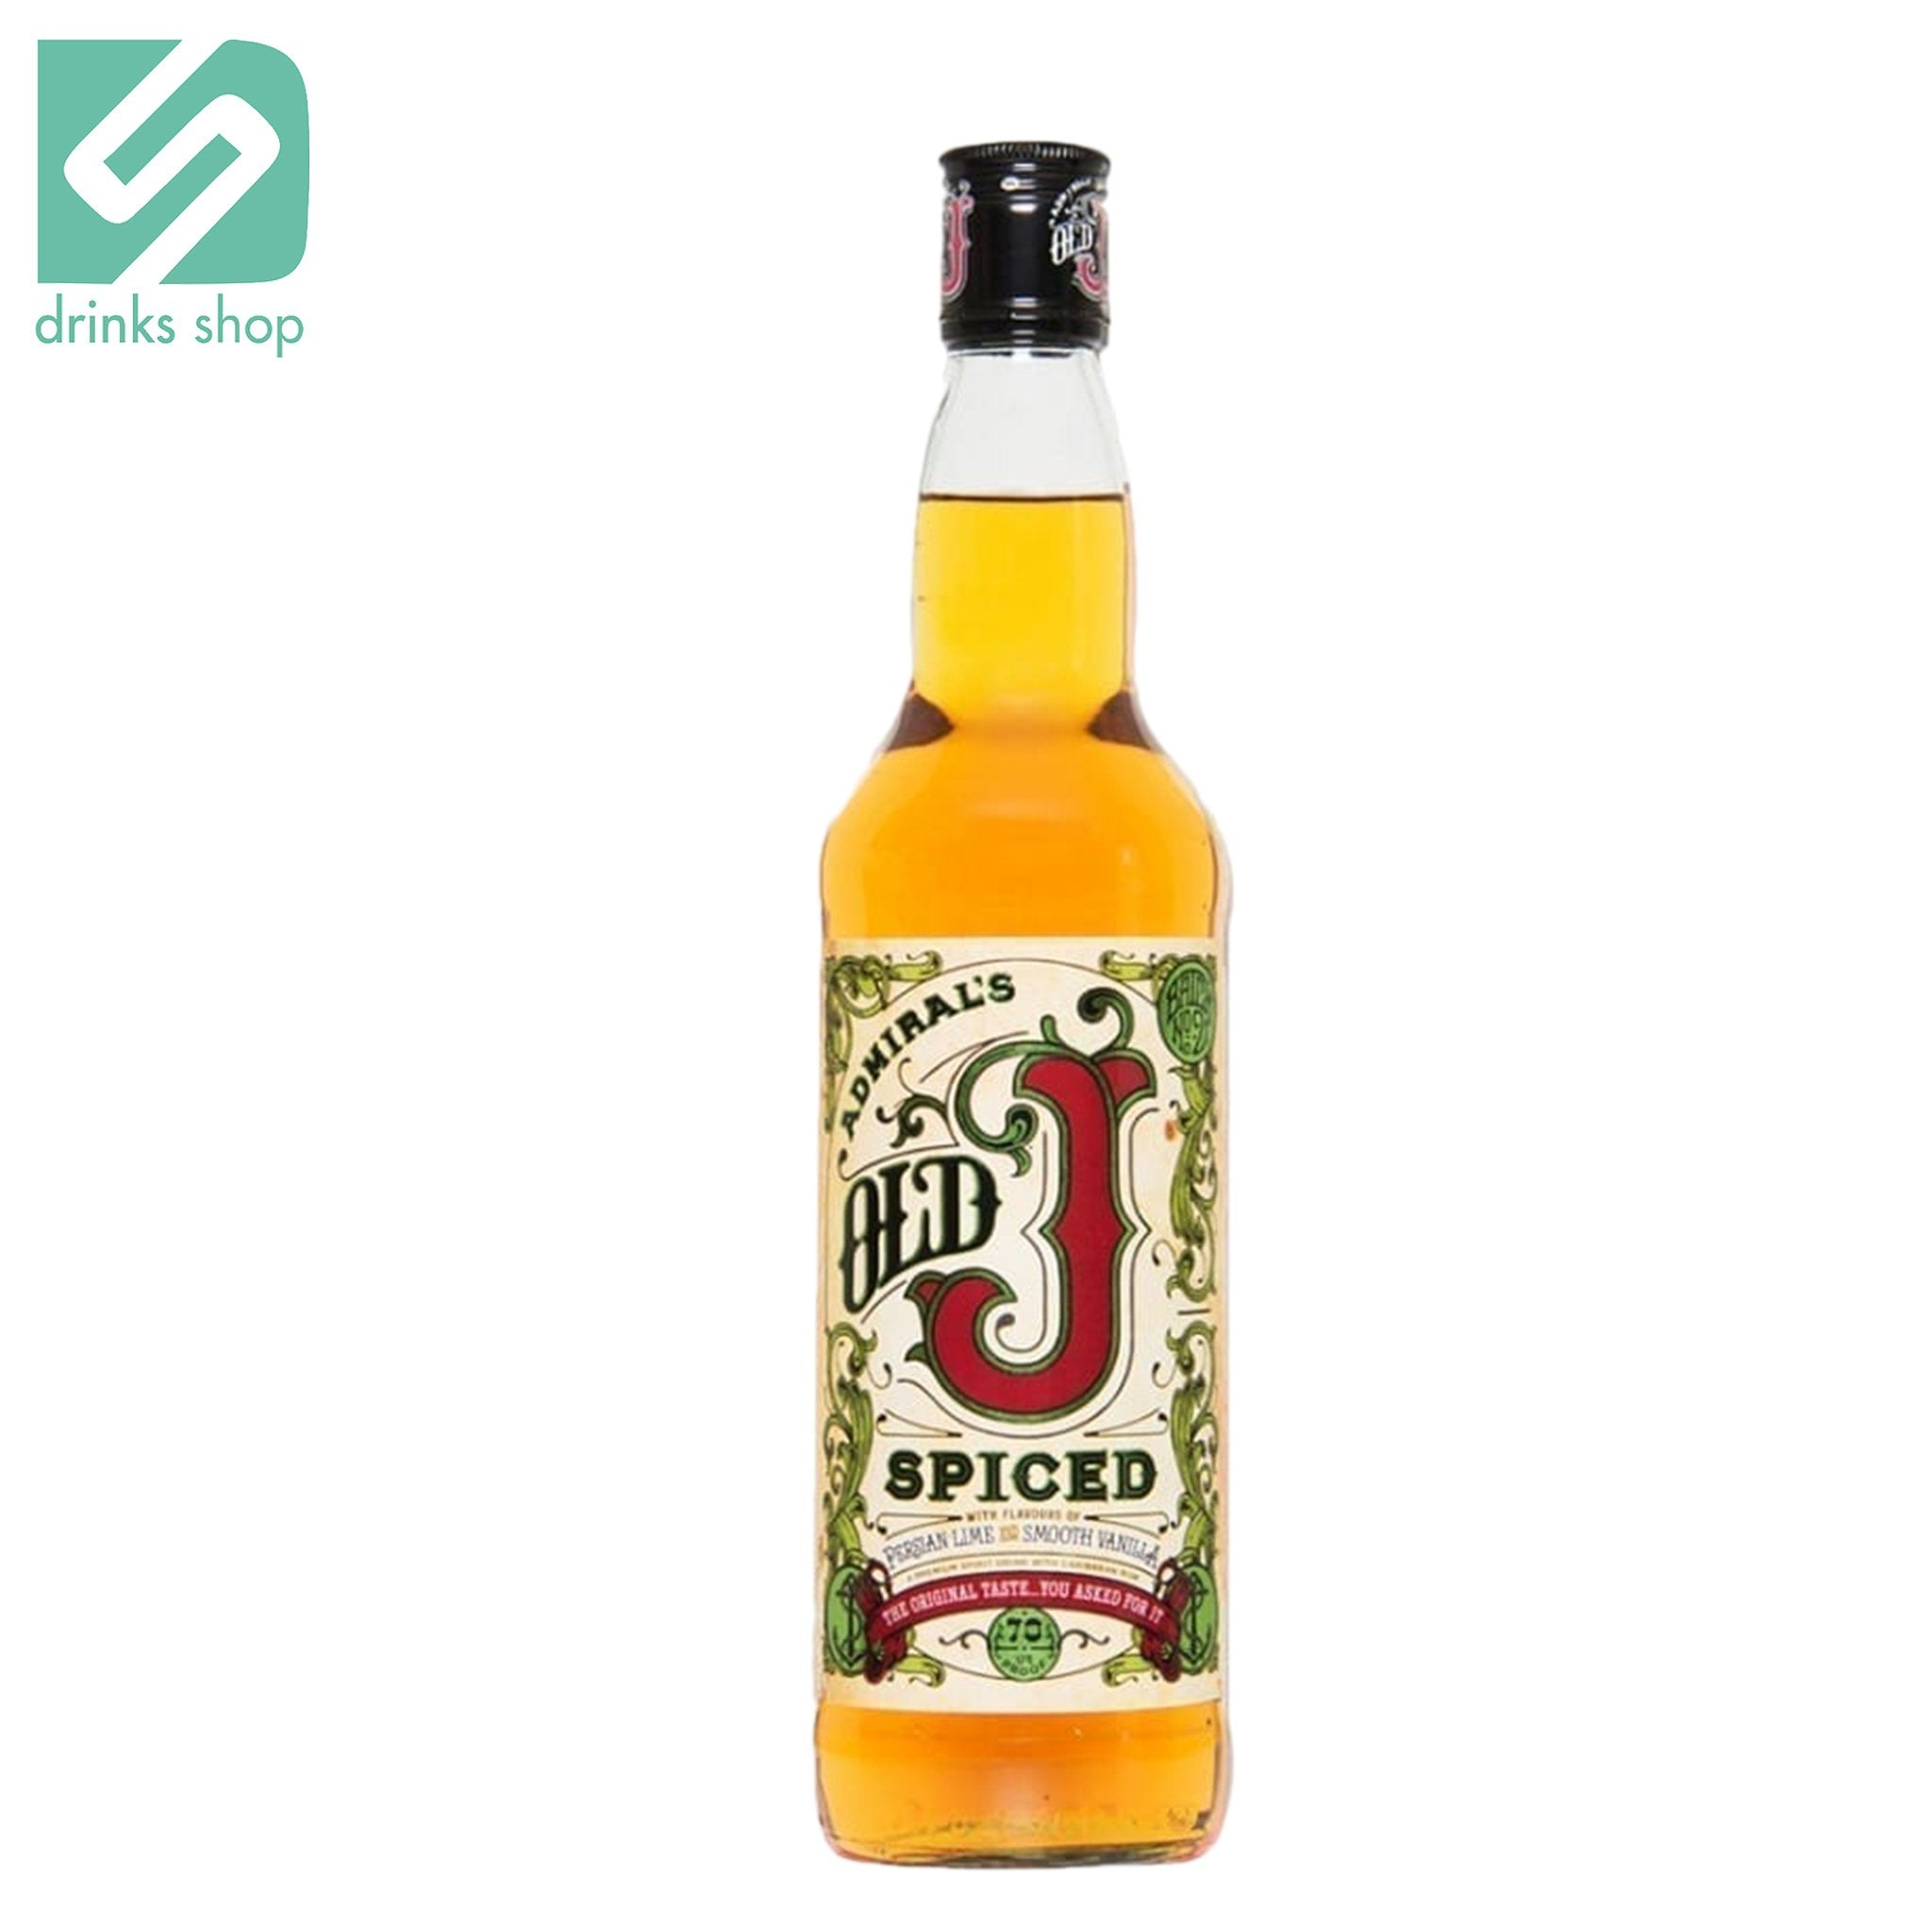 Admirals Old J Spiced 70cl, Rum - Image 2